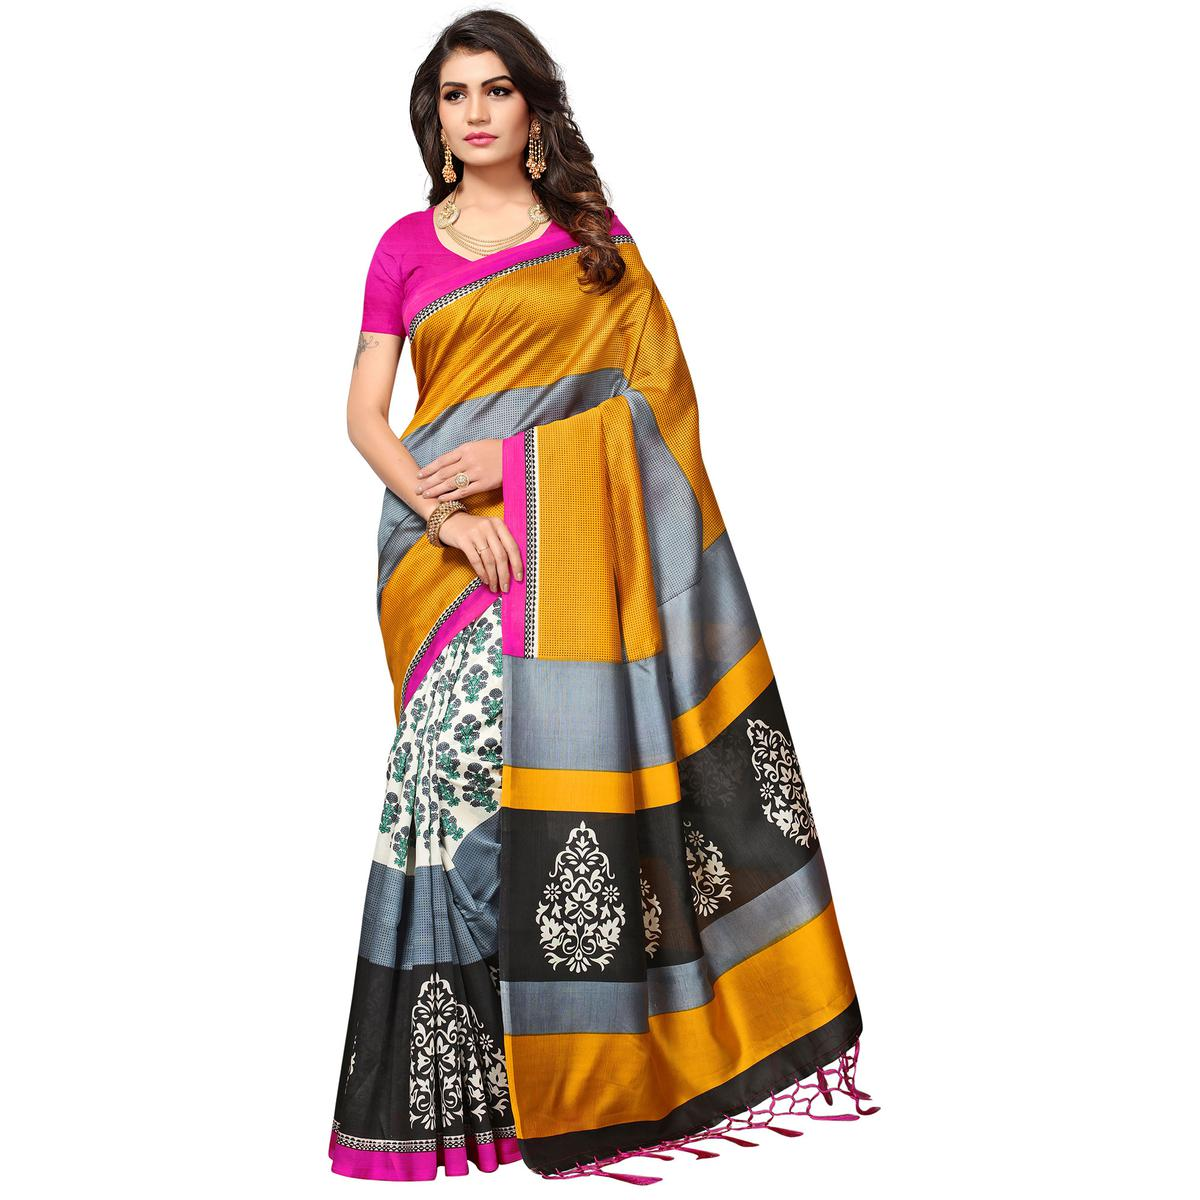 Exciting Multi Colored Festive Wear Printed Mysore Art Silk Half-Half Saree